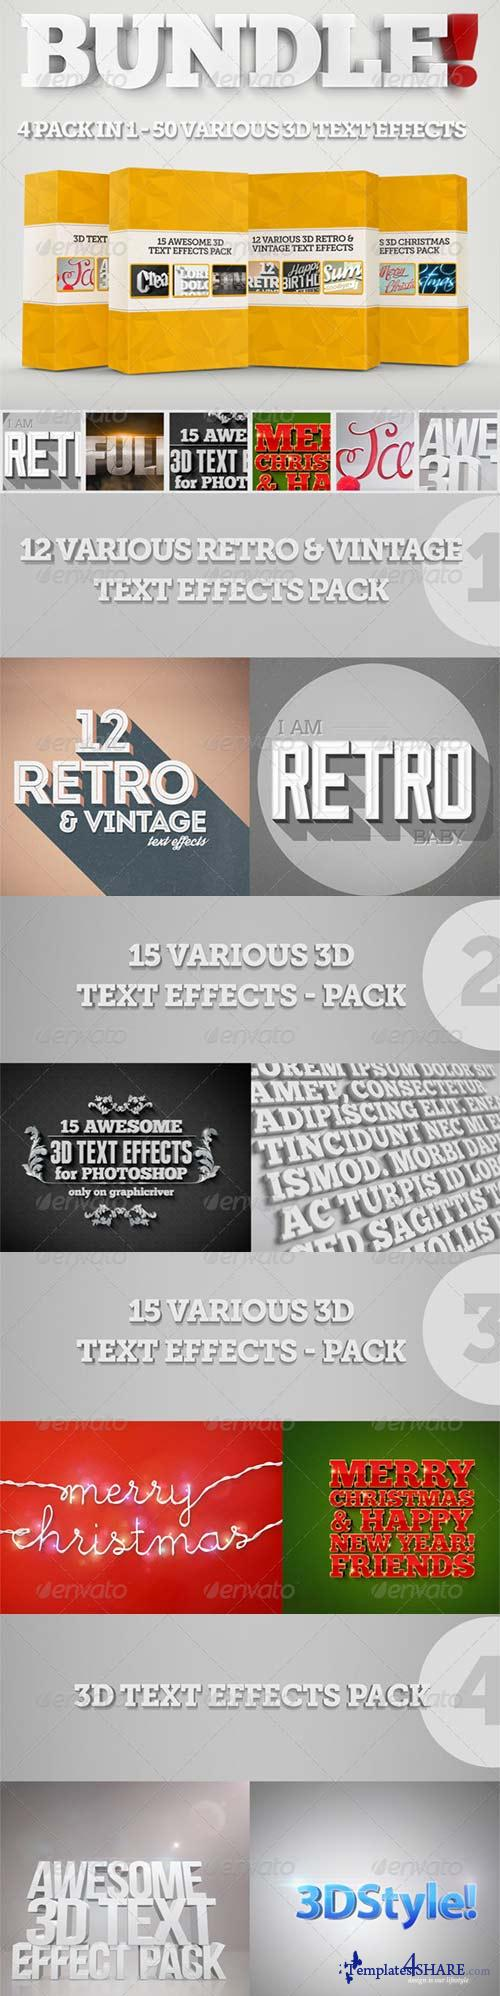 GraphicRiver Bundle - 50 Creative 3D Text Effects